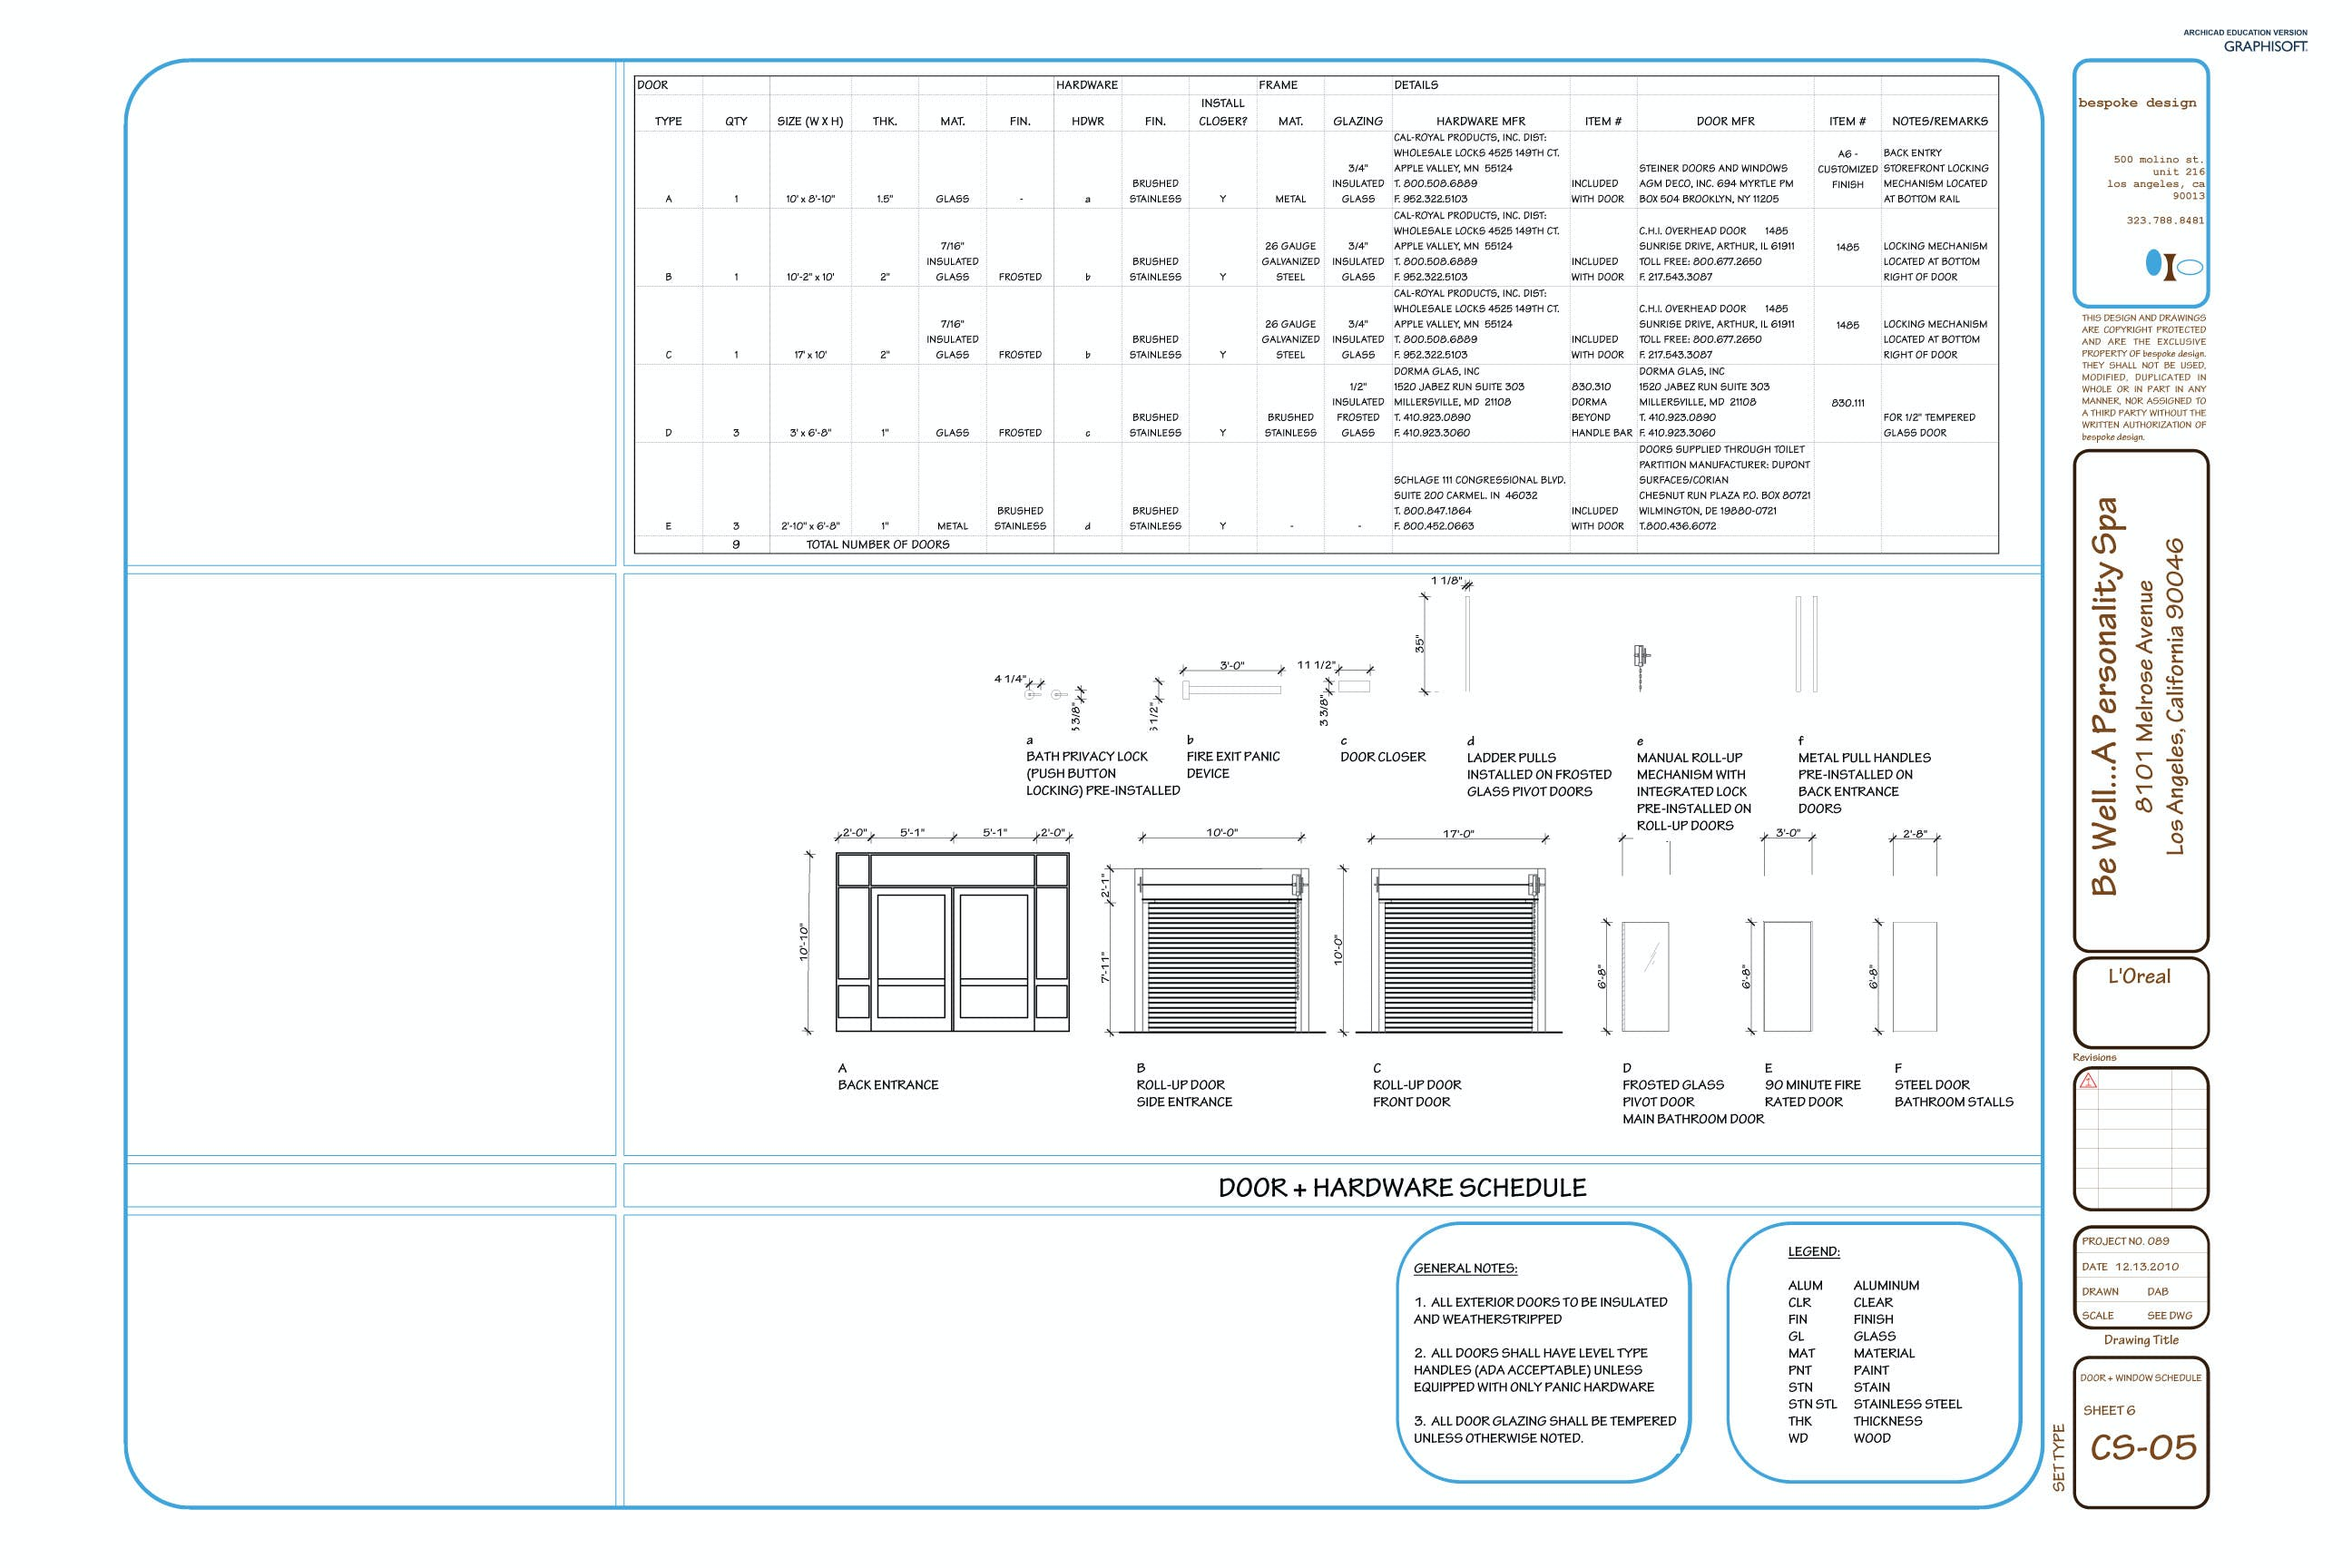 Be well construction documents darra bishop archinect for Window and door schedule template